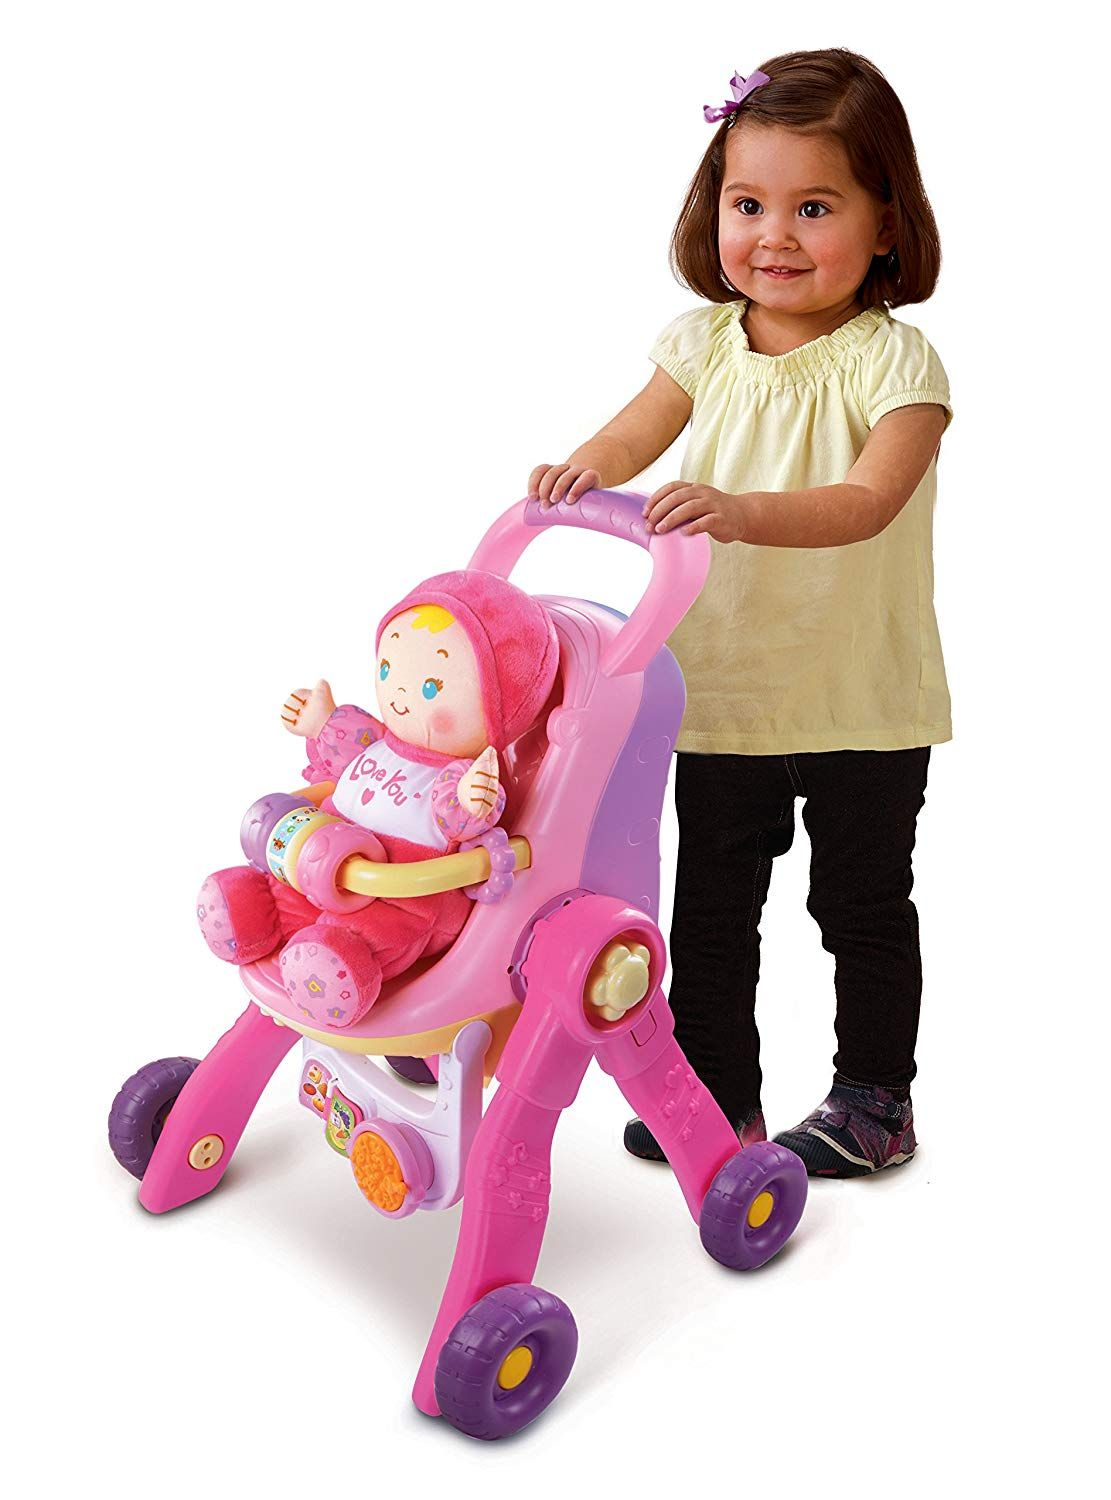 Best Gifts and Toys for 1 Year Old Girls Baby doll